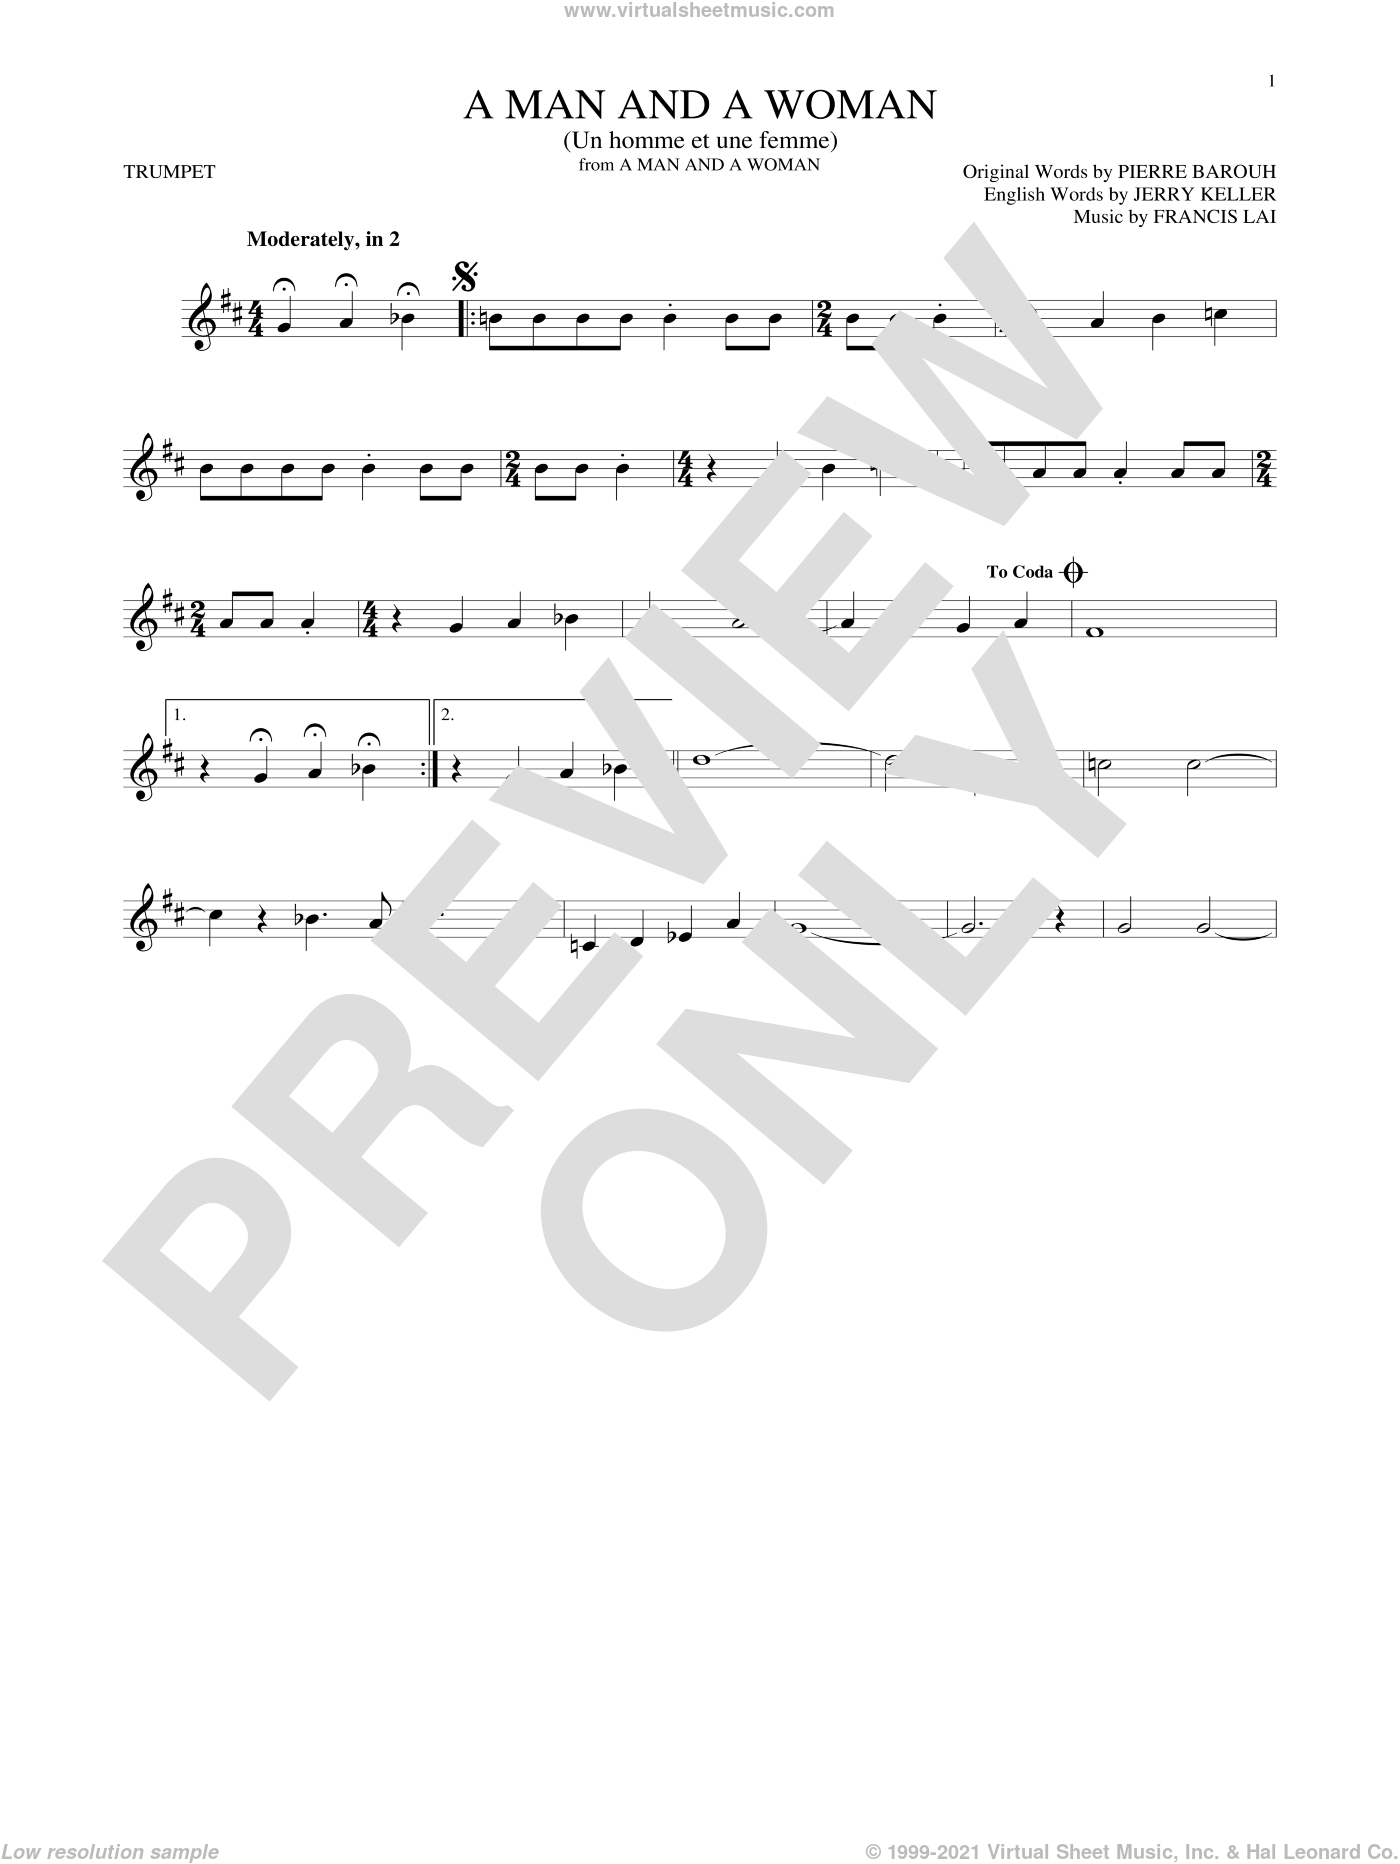 A Man And A Woman (Un Homme Et Une Femme) sheet music for trumpet solo by Pierre Barouh, Herbie Mann and Tamiko Jones, Francis Lai and Jerry Keller. Score Image Preview.